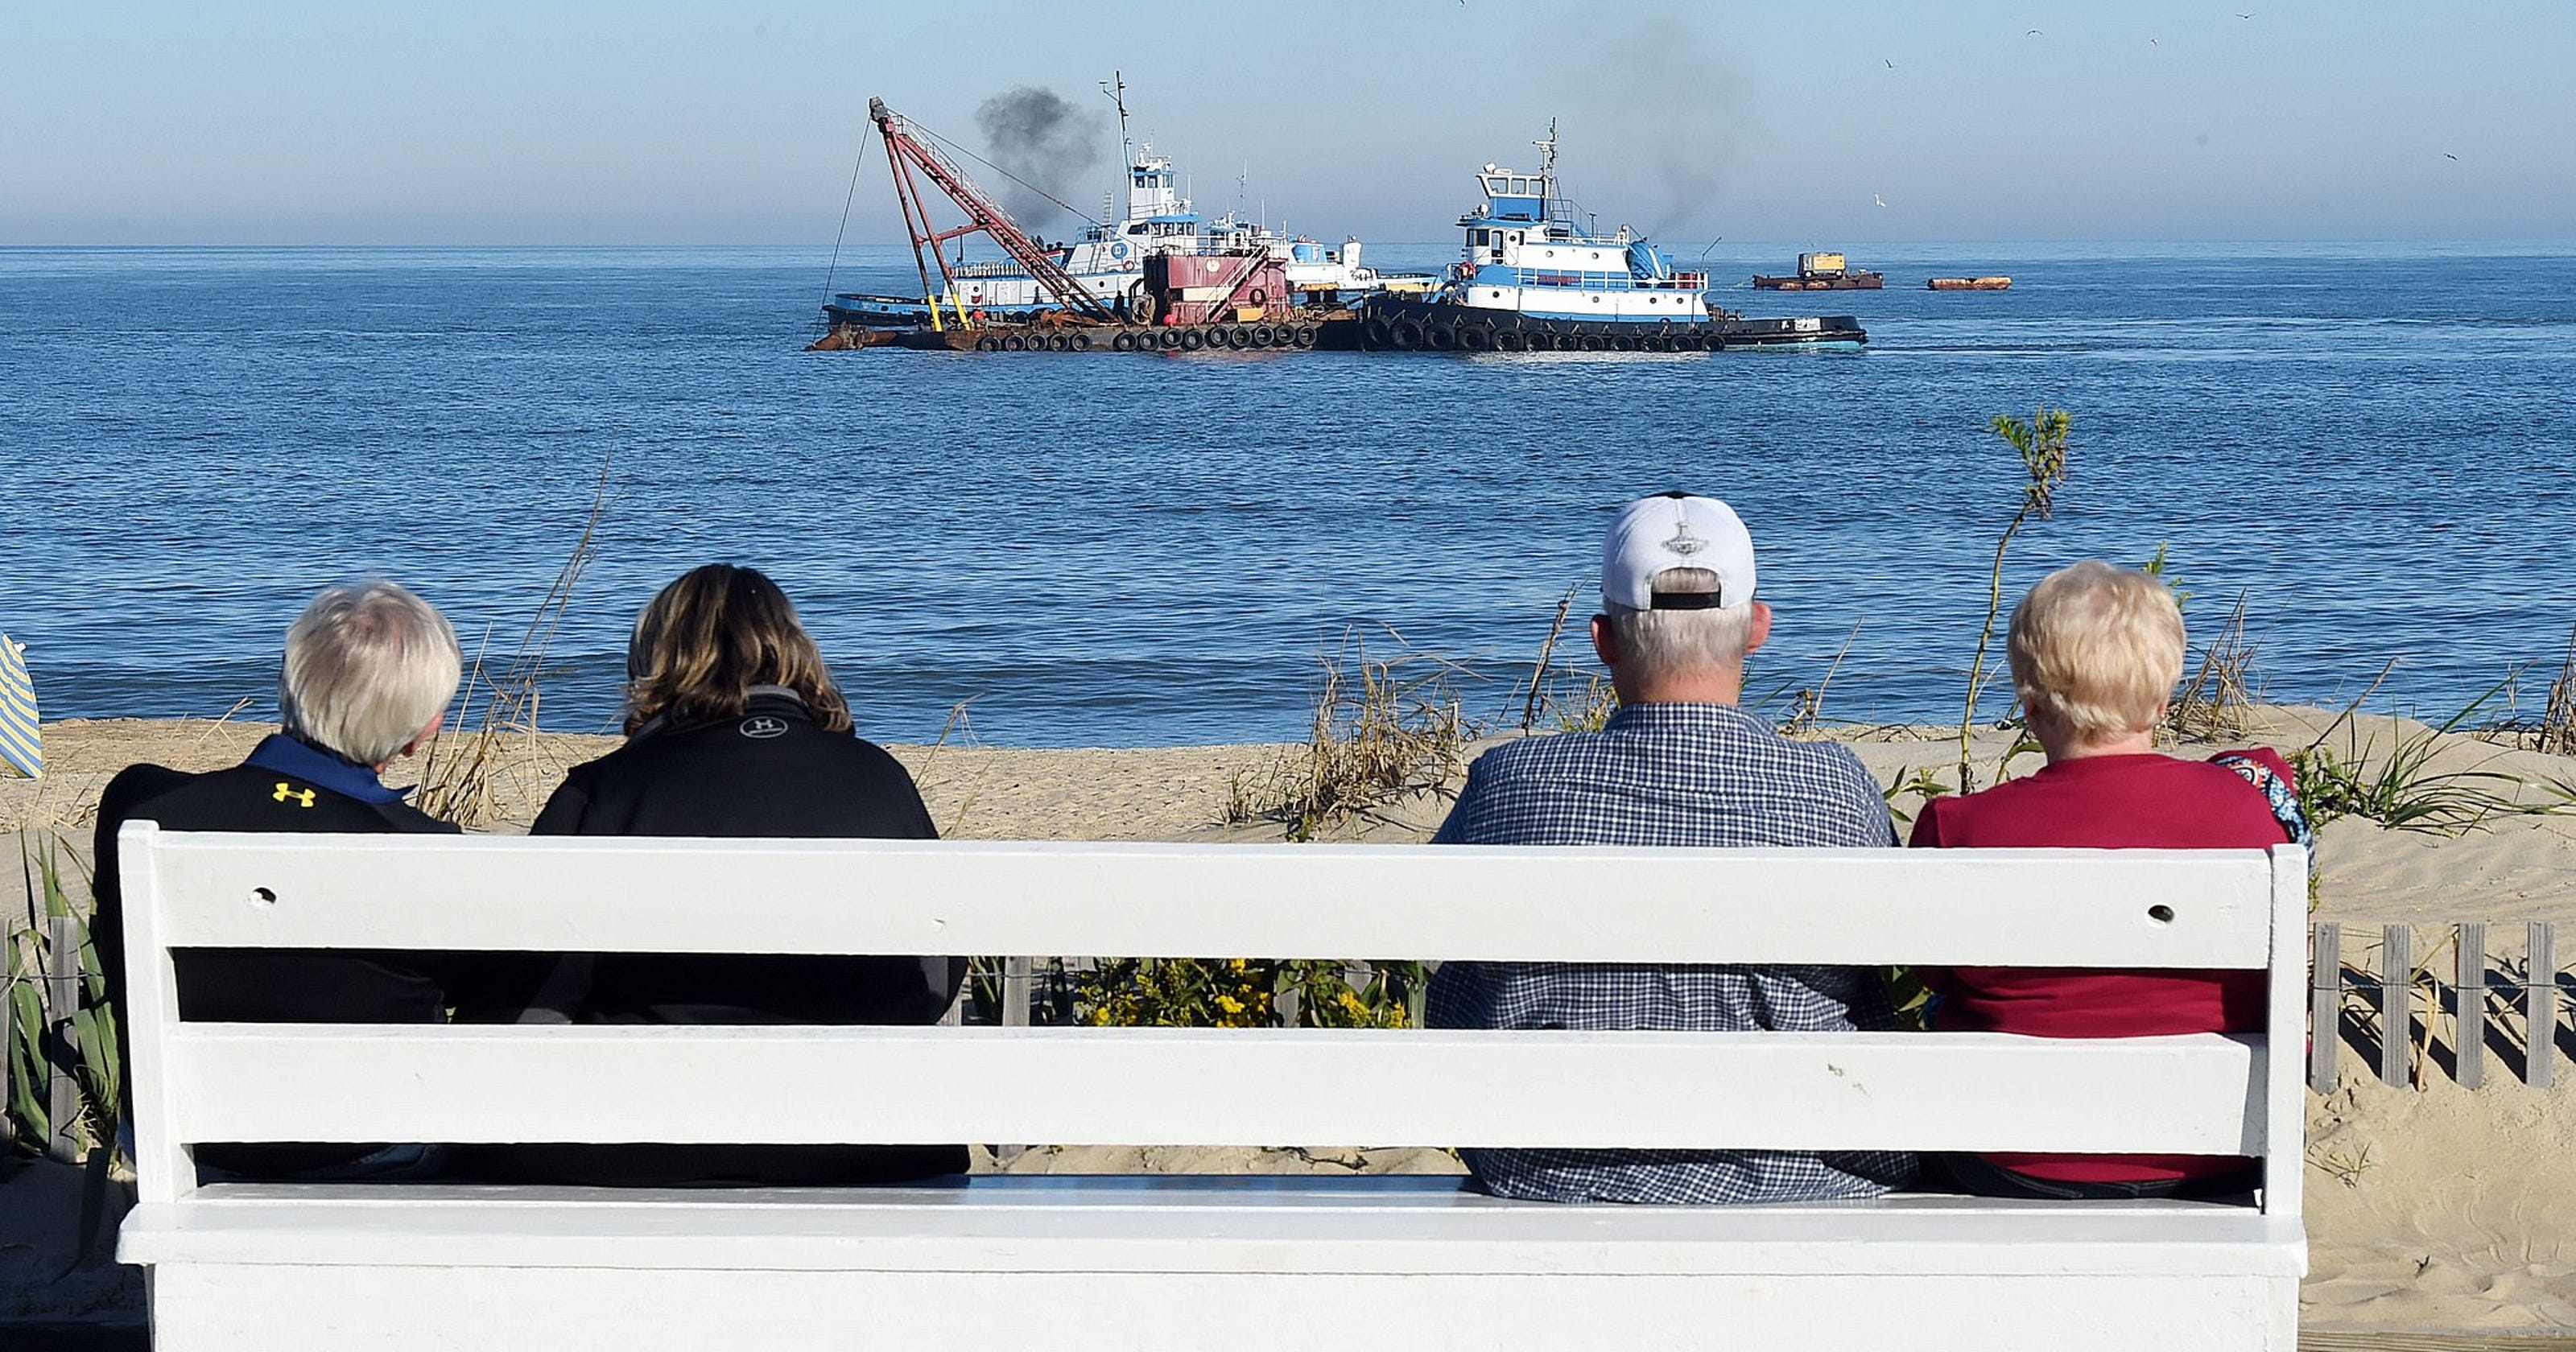 Rehoboth sand pumping could start soon